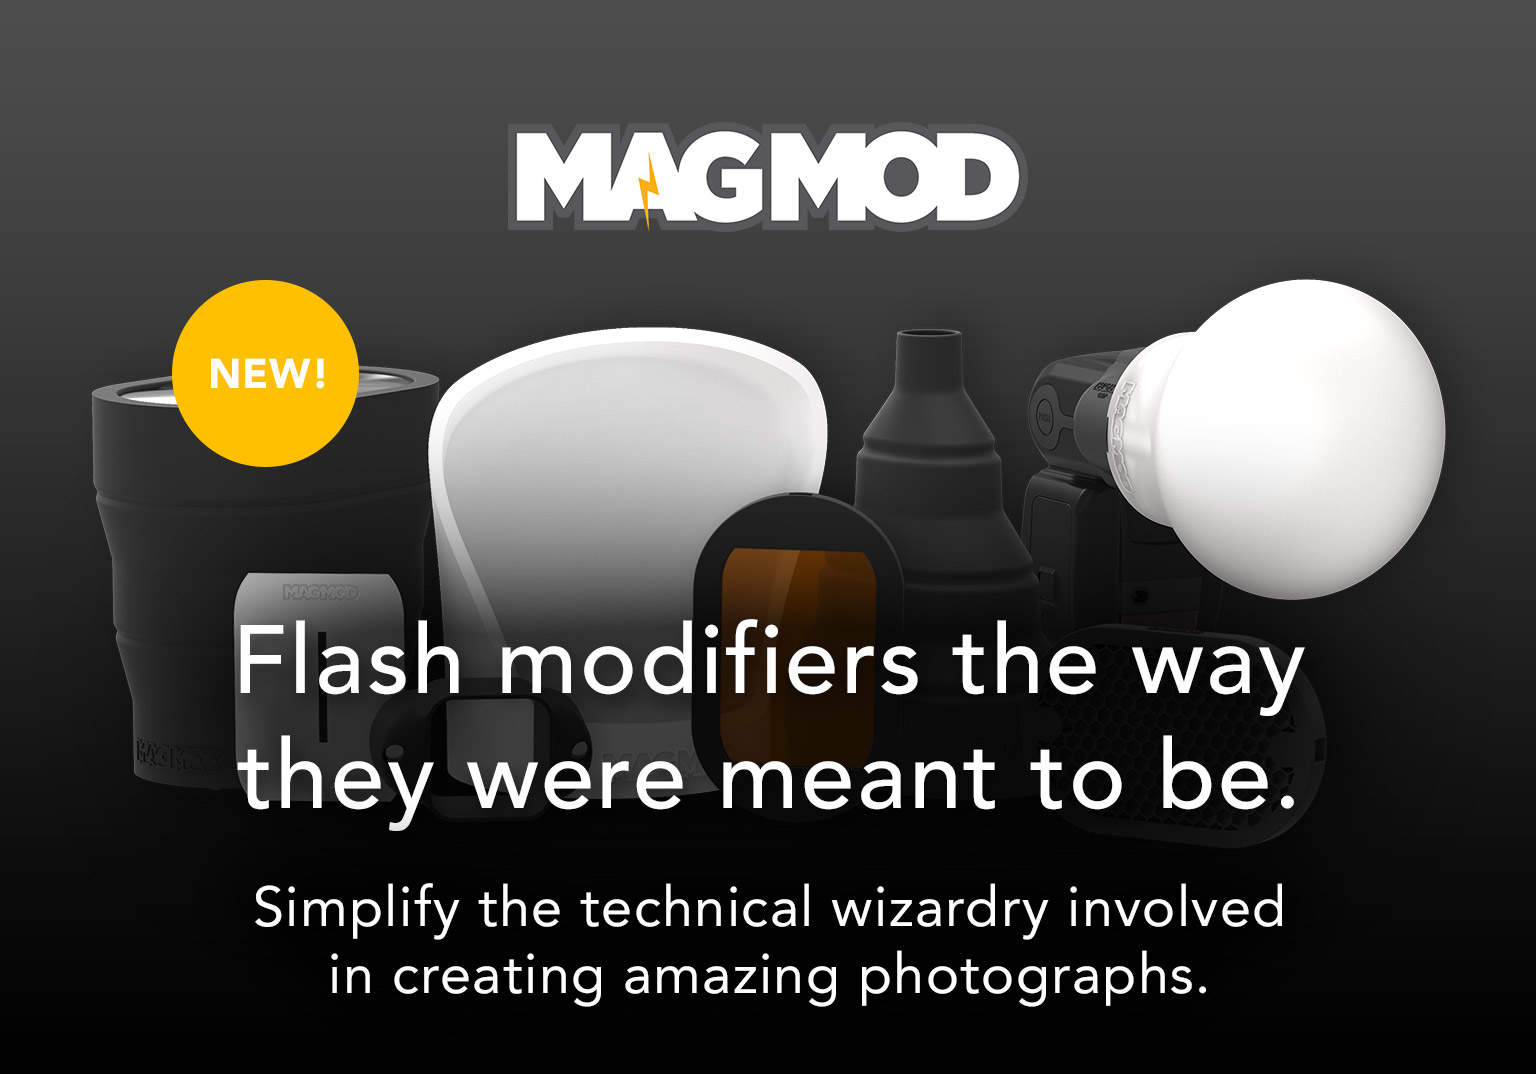 MagMod - Flash modifiers the way they were meant to be. Simplify the technical wizardry involved in creating amazing photographs.